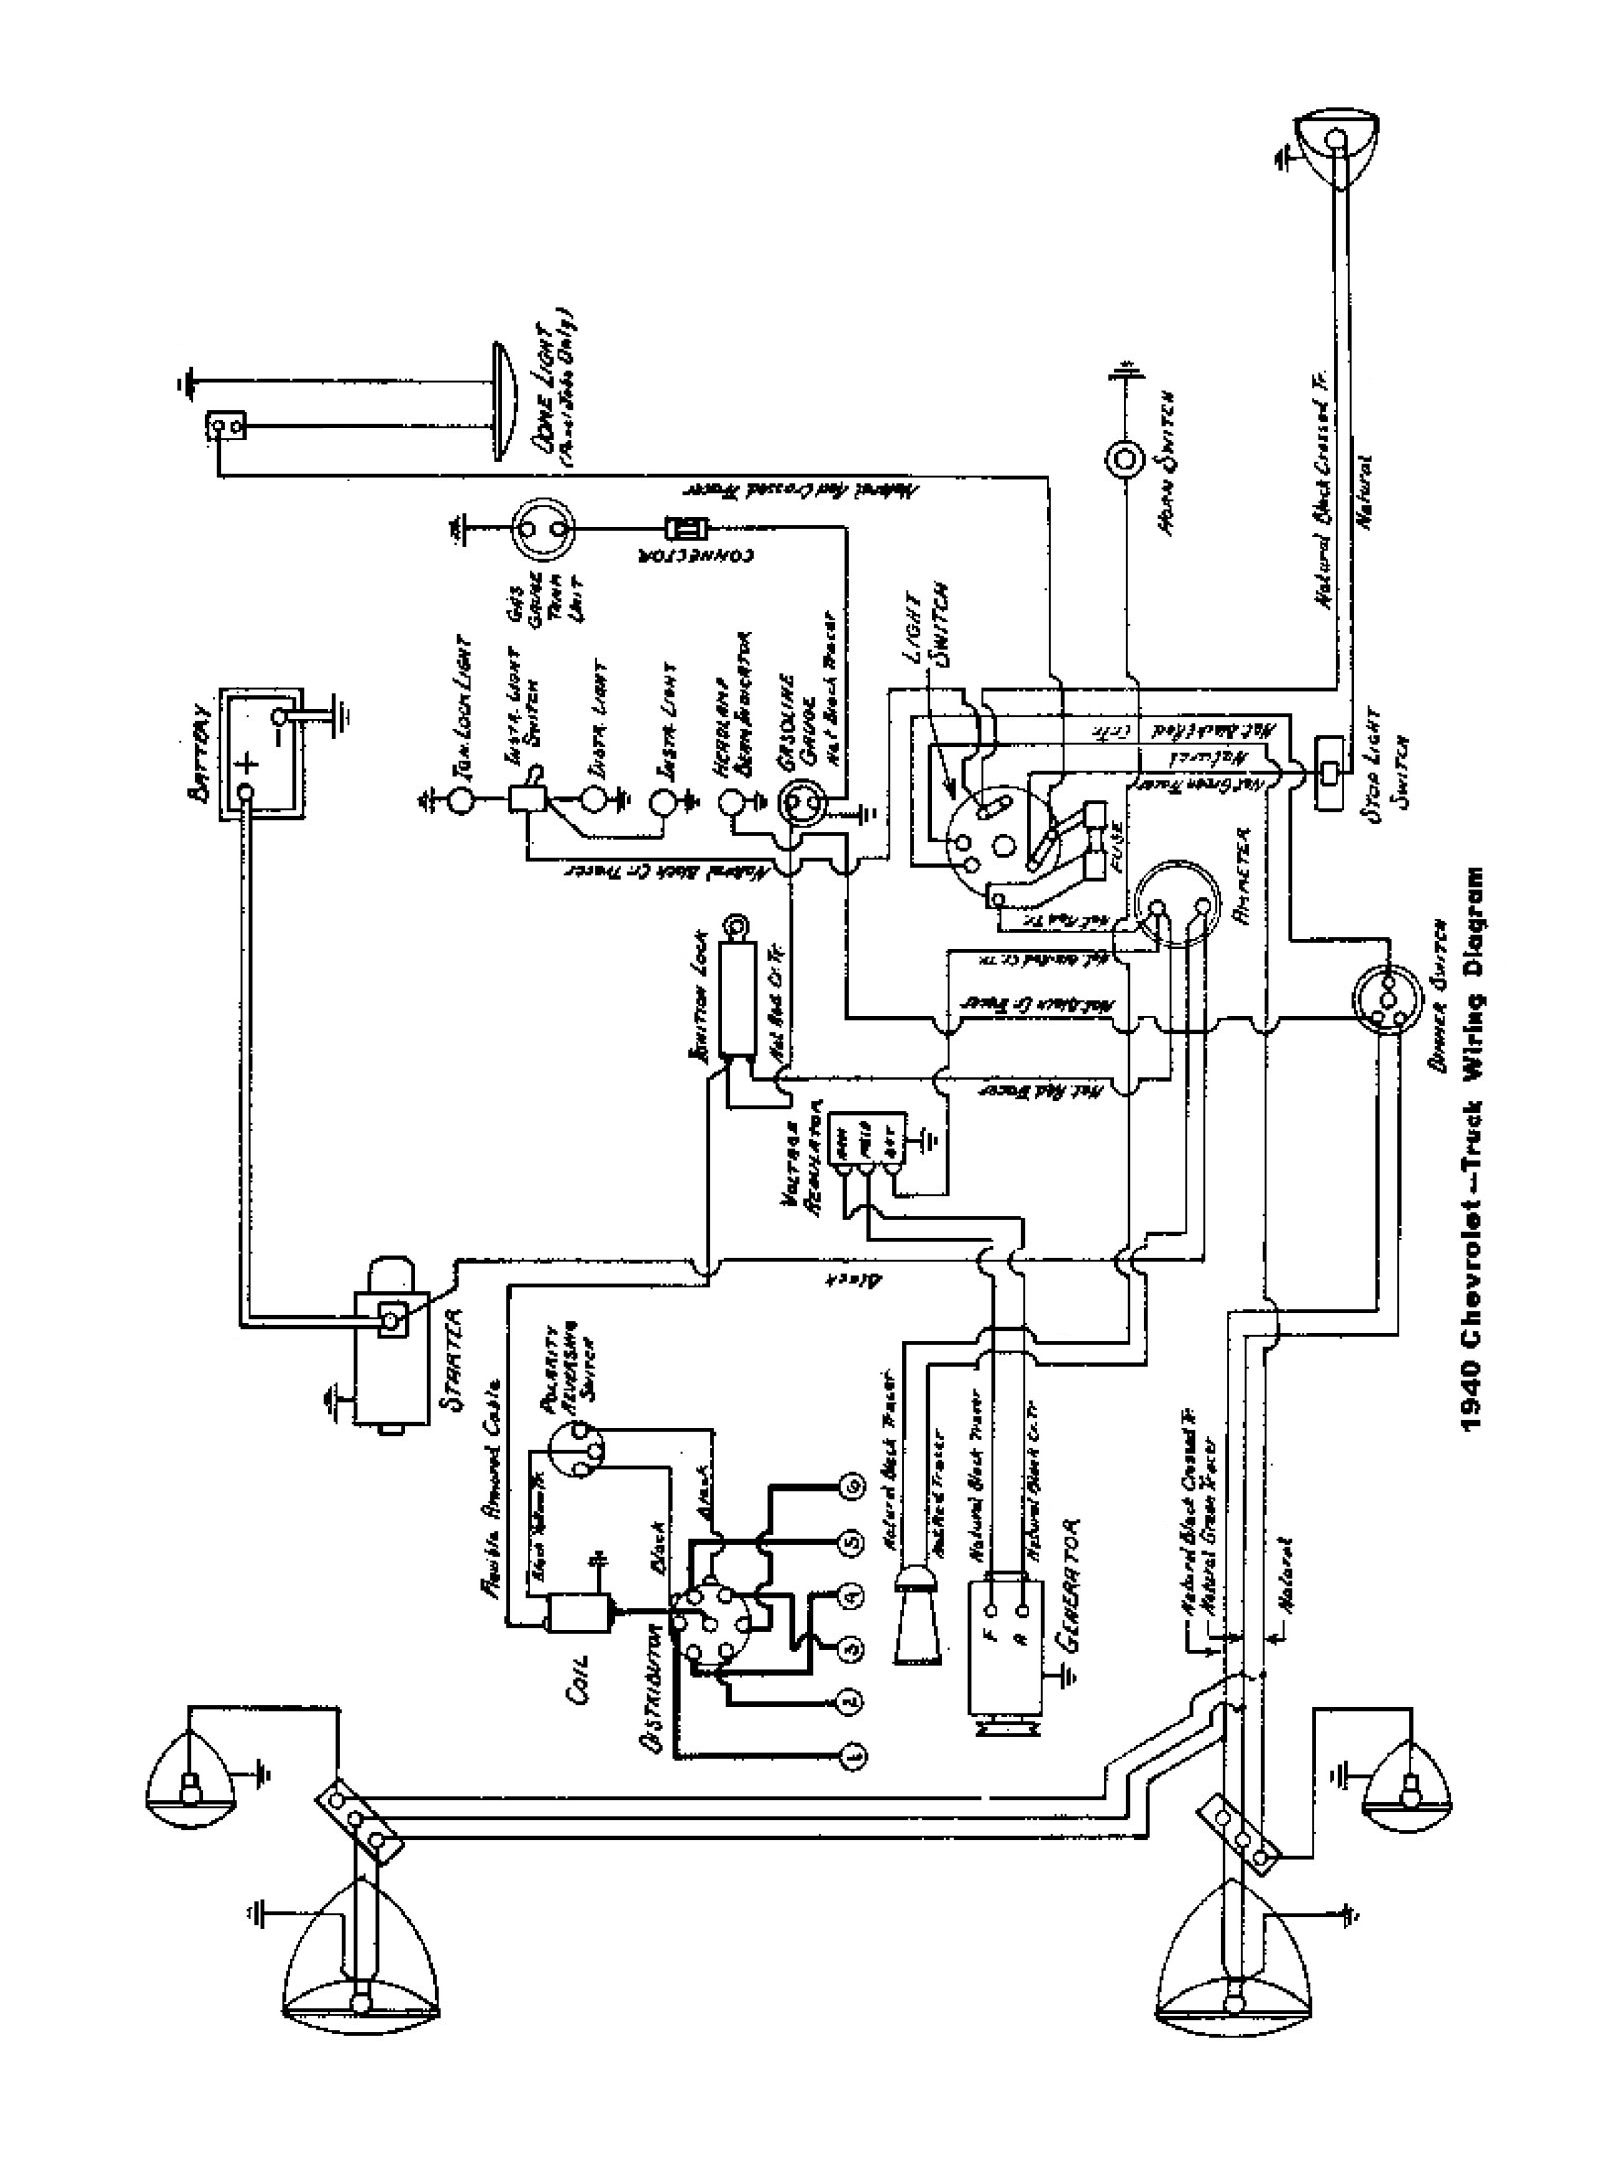 1942 chevy headlight wiring diagram chevy wiring diagrams